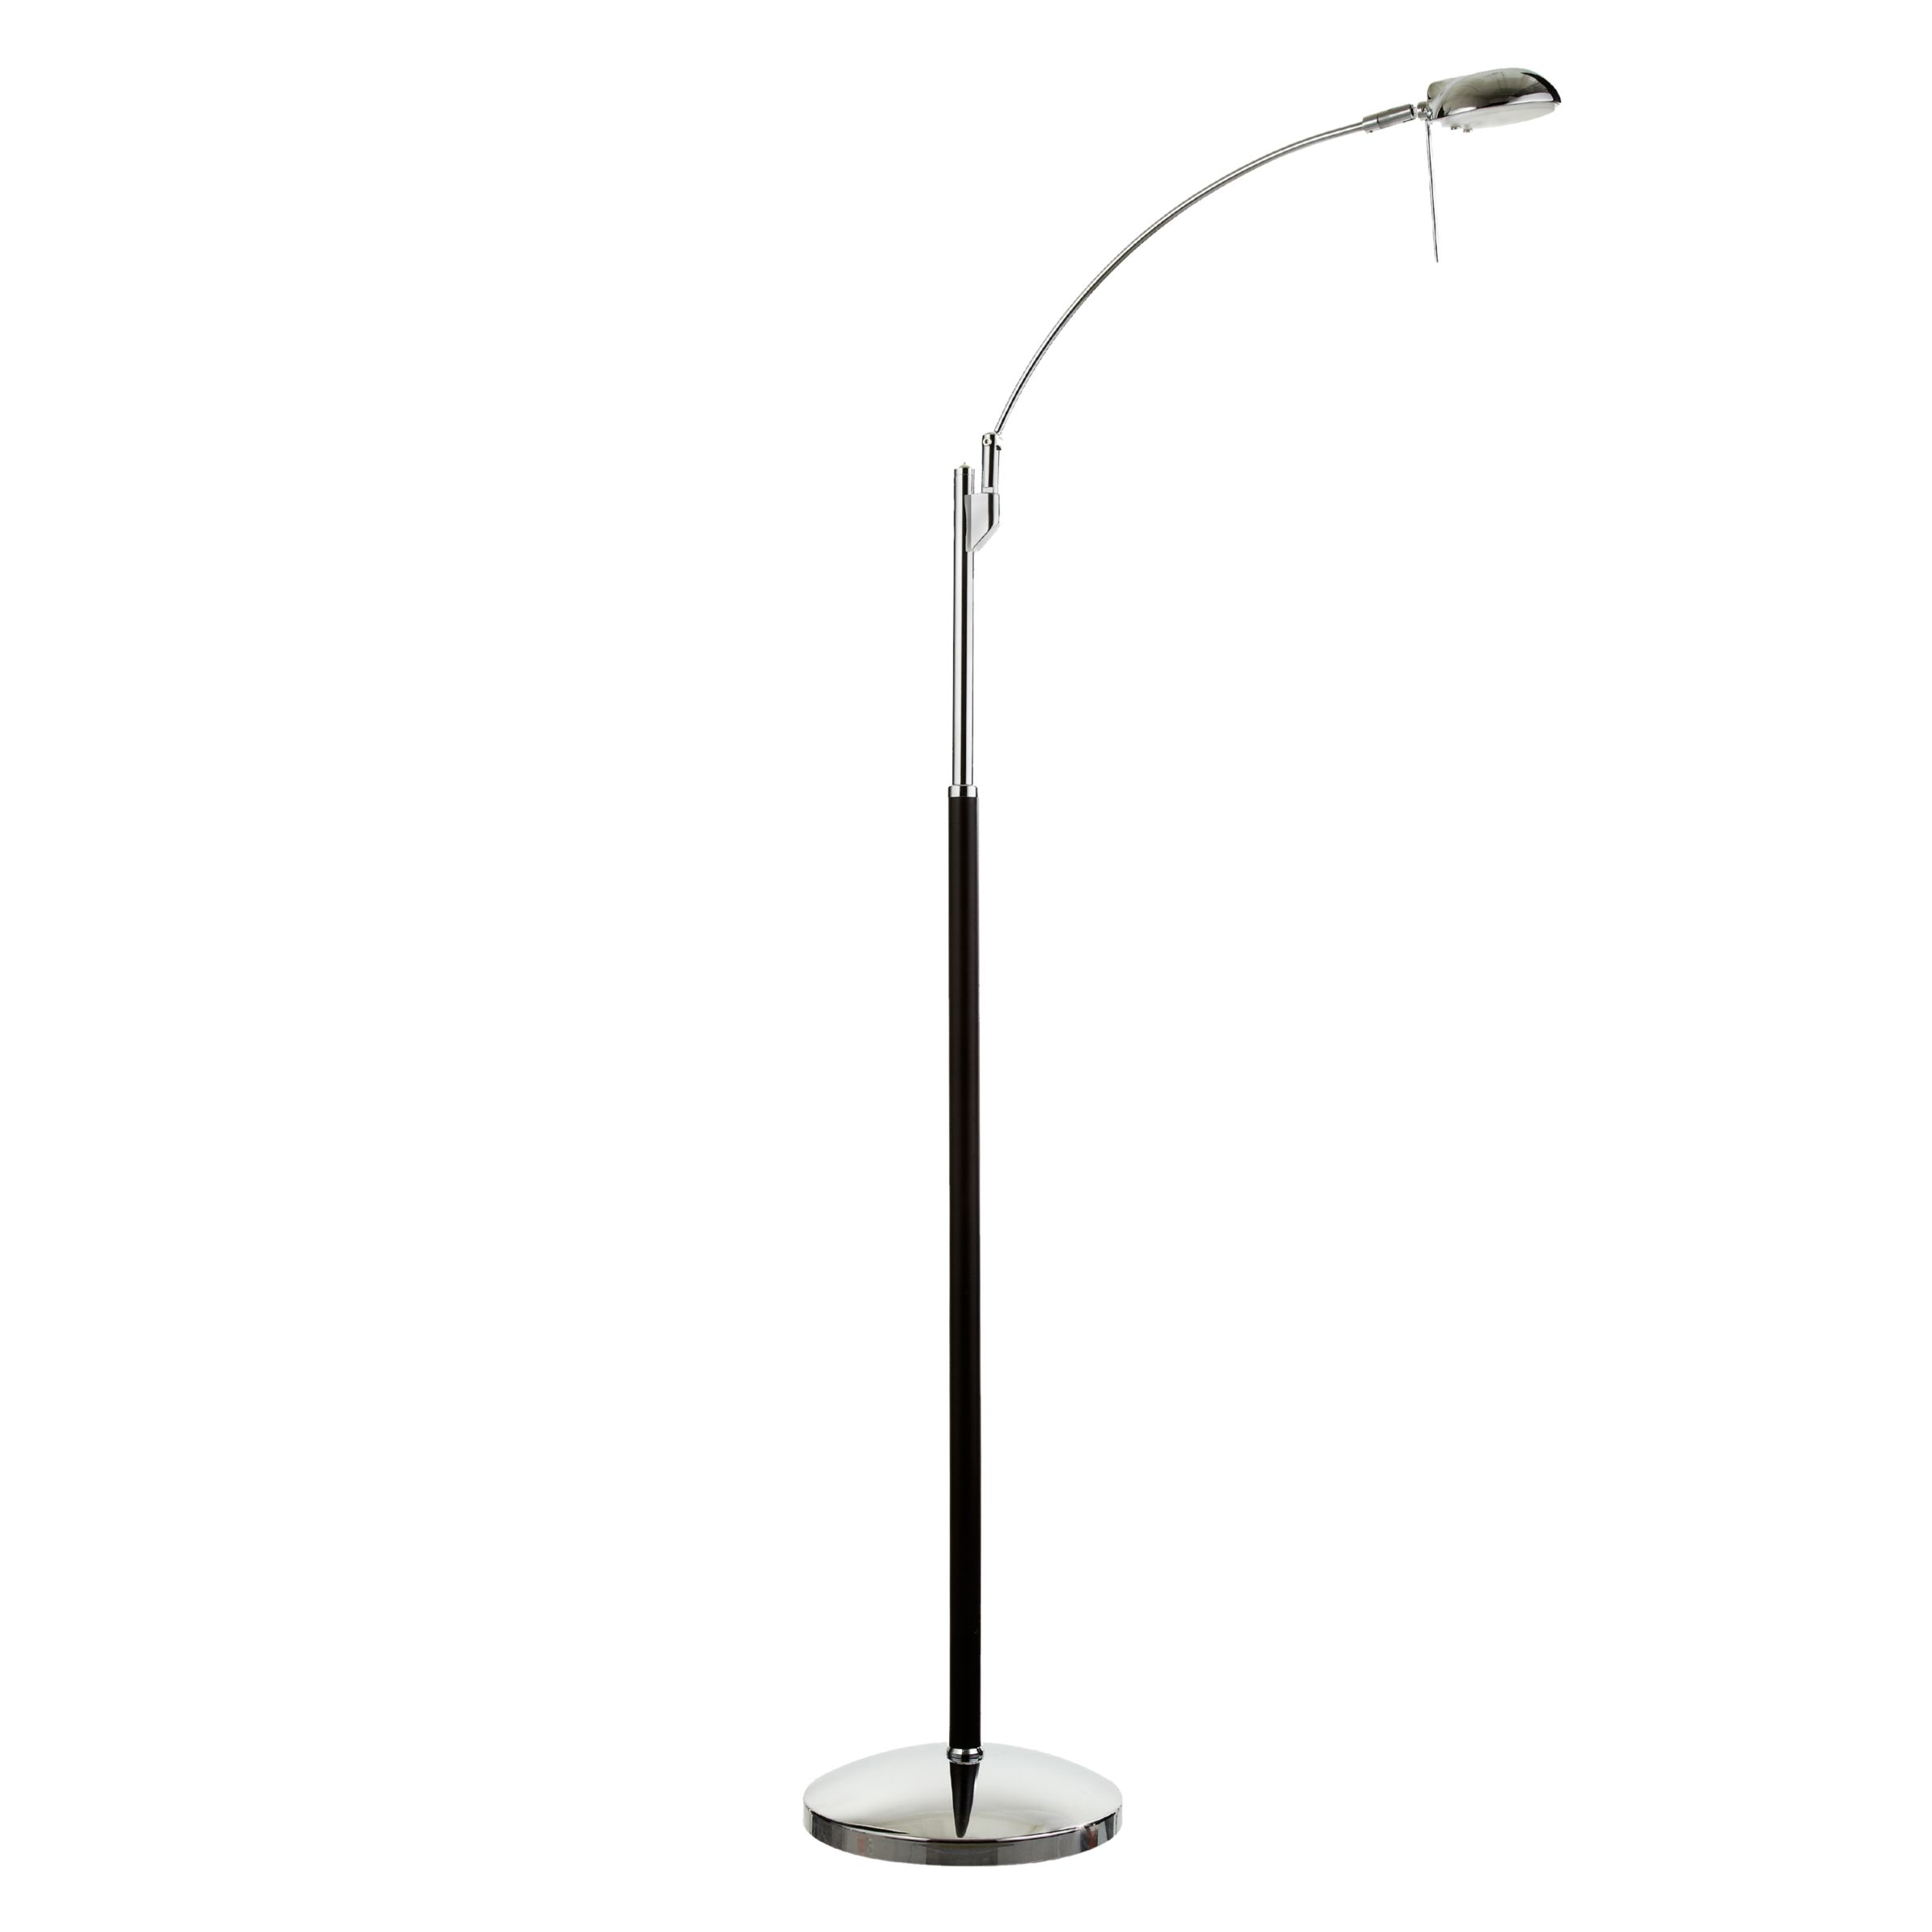 Buy cheap standing lamp compare lighting prices for best for Daylight floor lamp john lewis